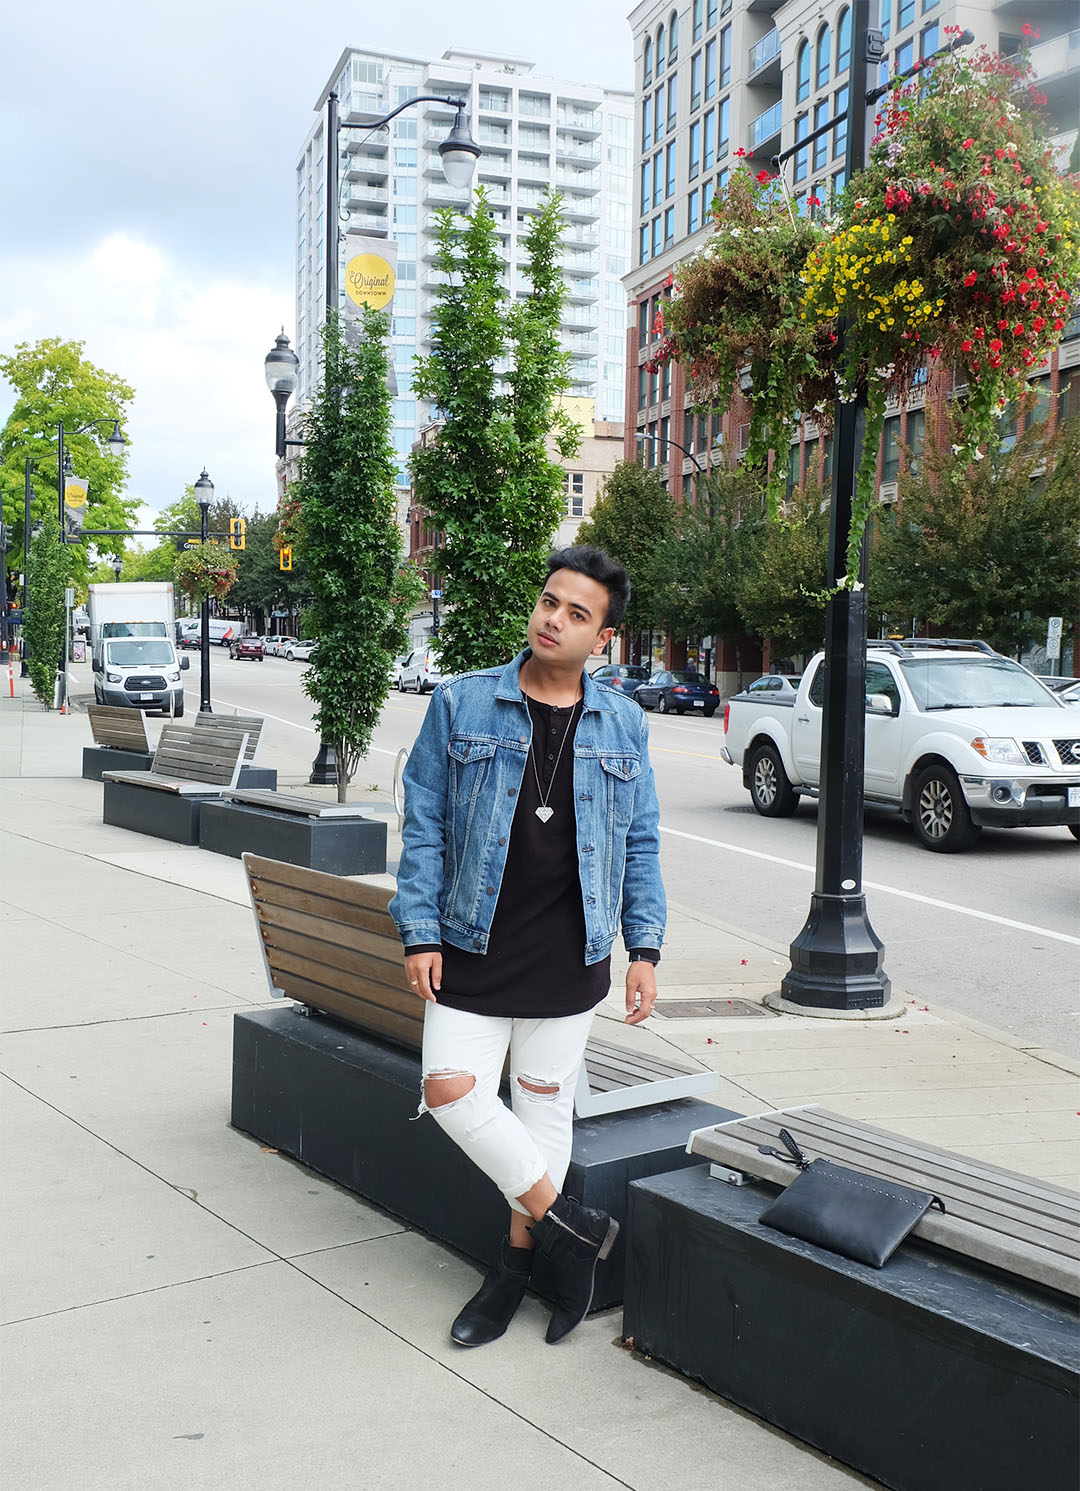 Jonathan Waiching Ho_Levis Denim Jacekt_Top Bloggers Canada_Influencer in Vancouver_2